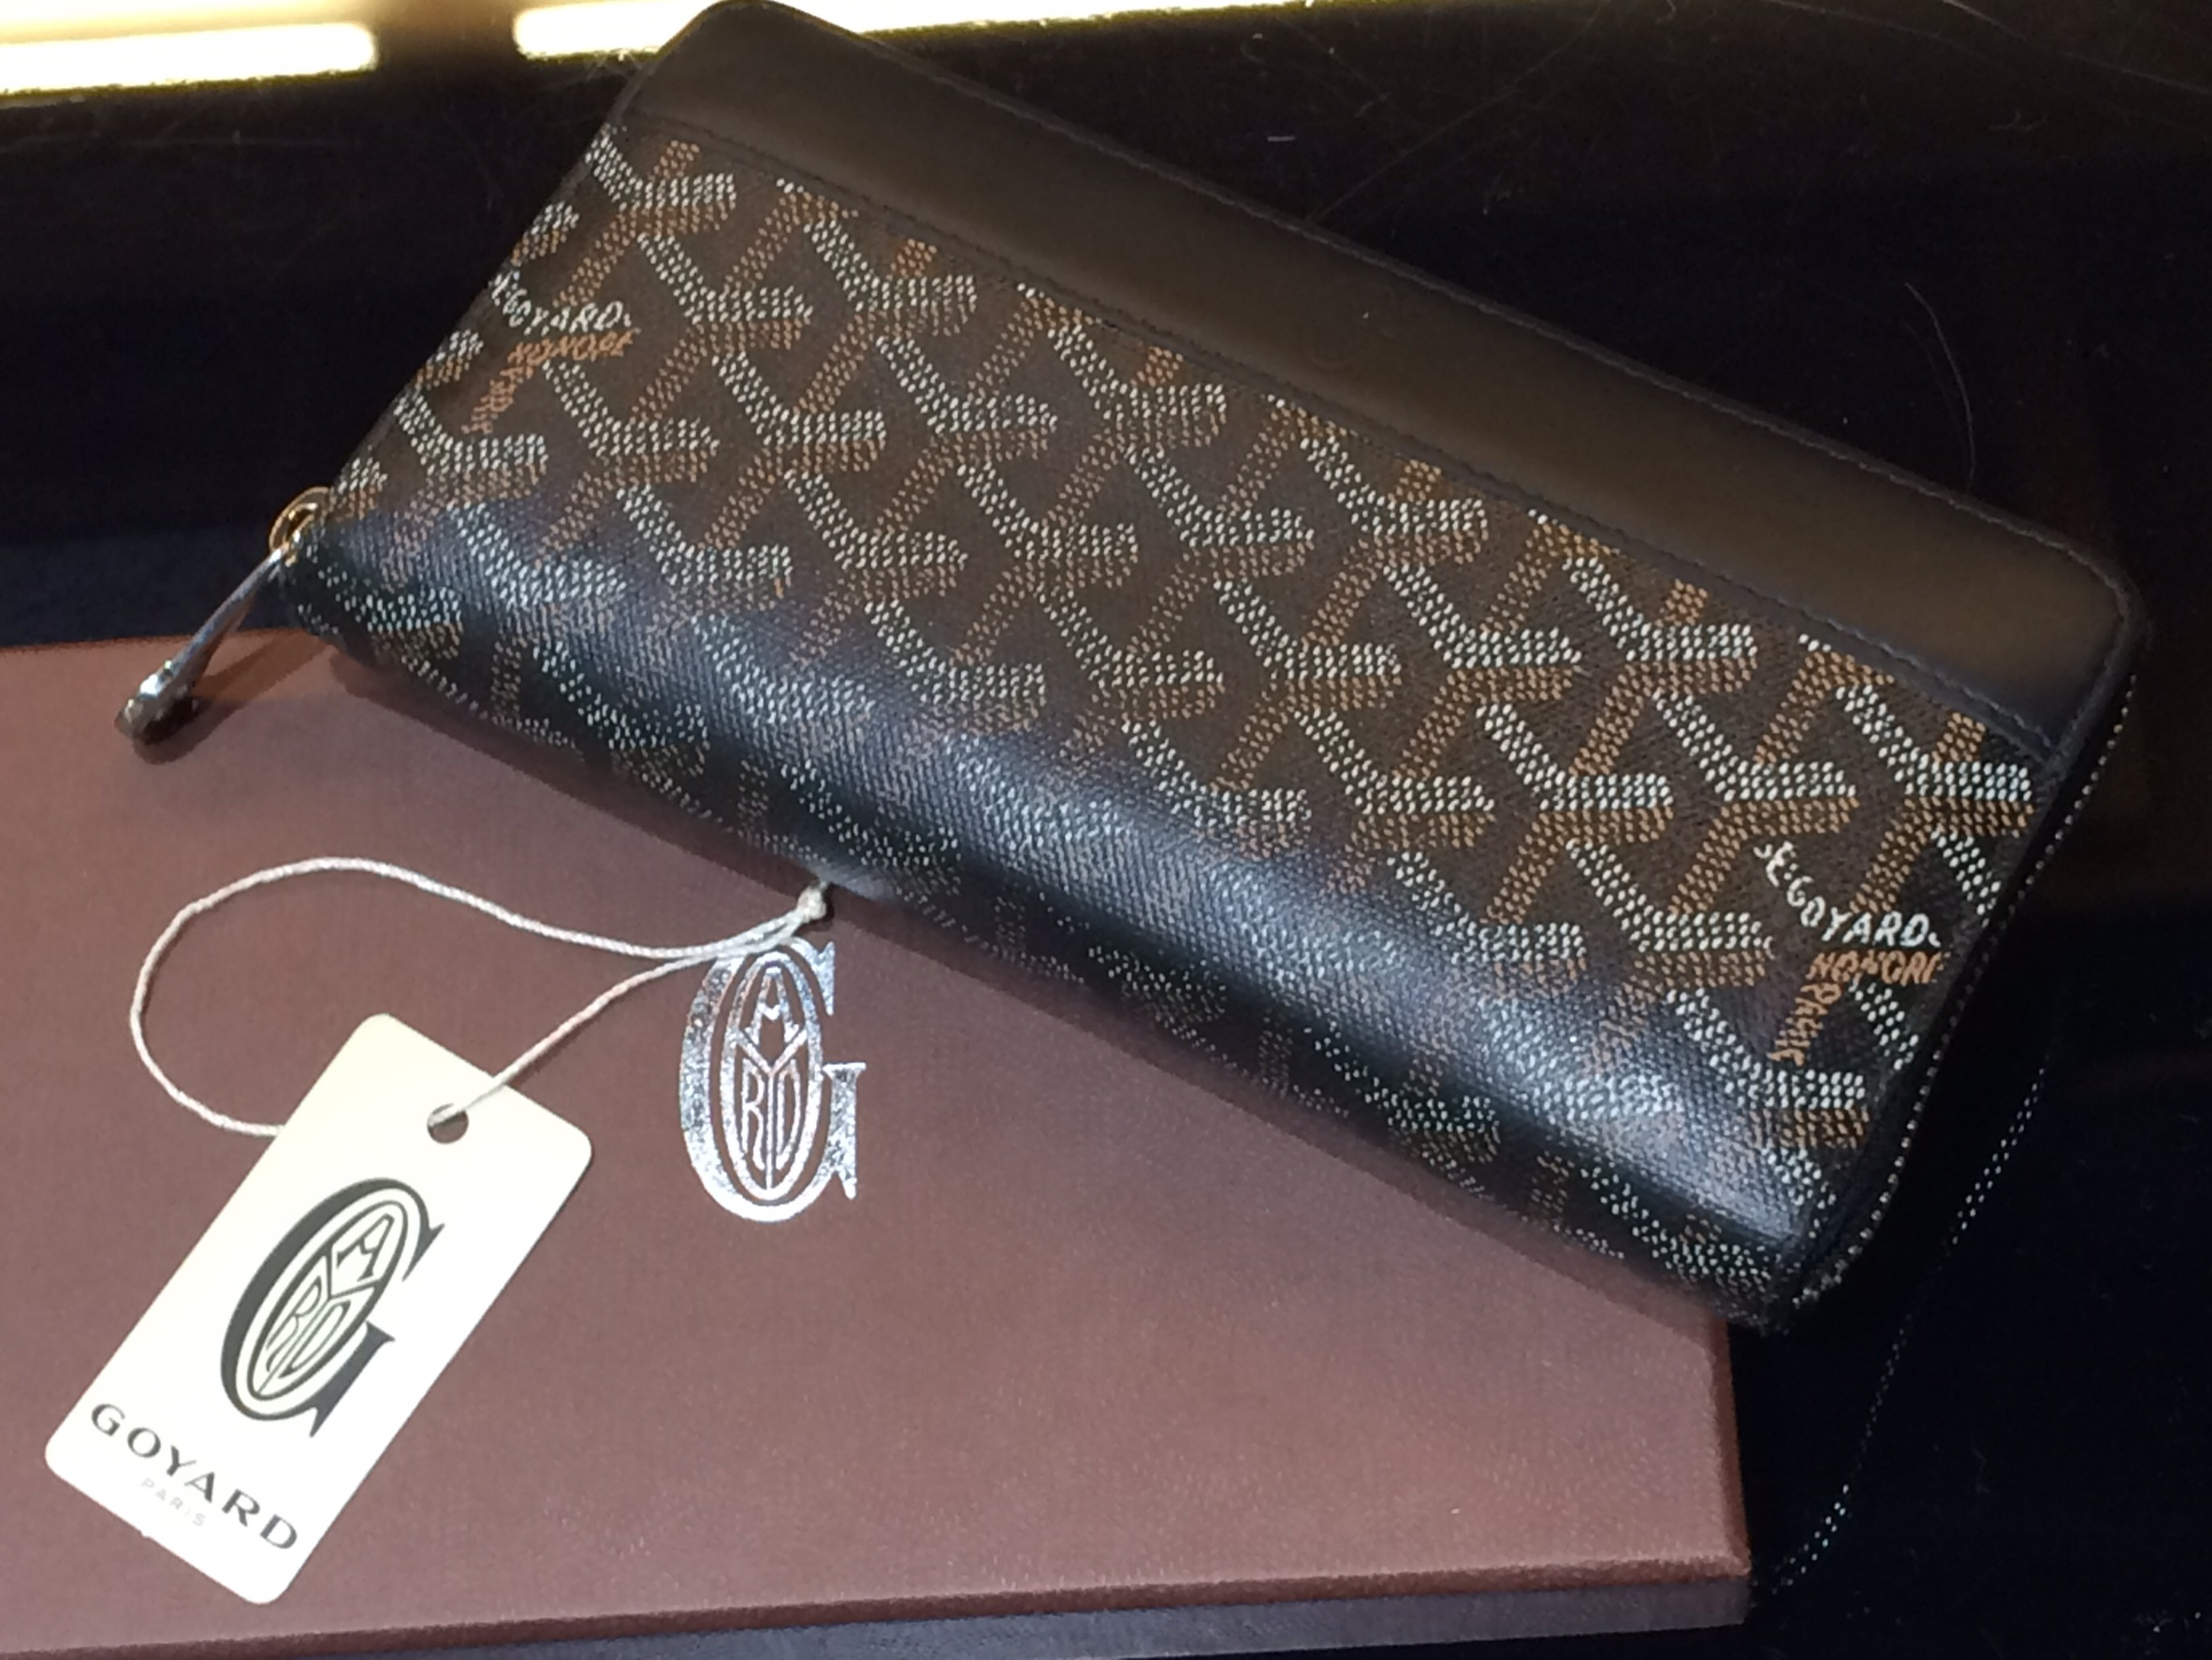 dc41cb20123a Goyard 財布 柄 | Stanford Center for Opportunity Policy in Education